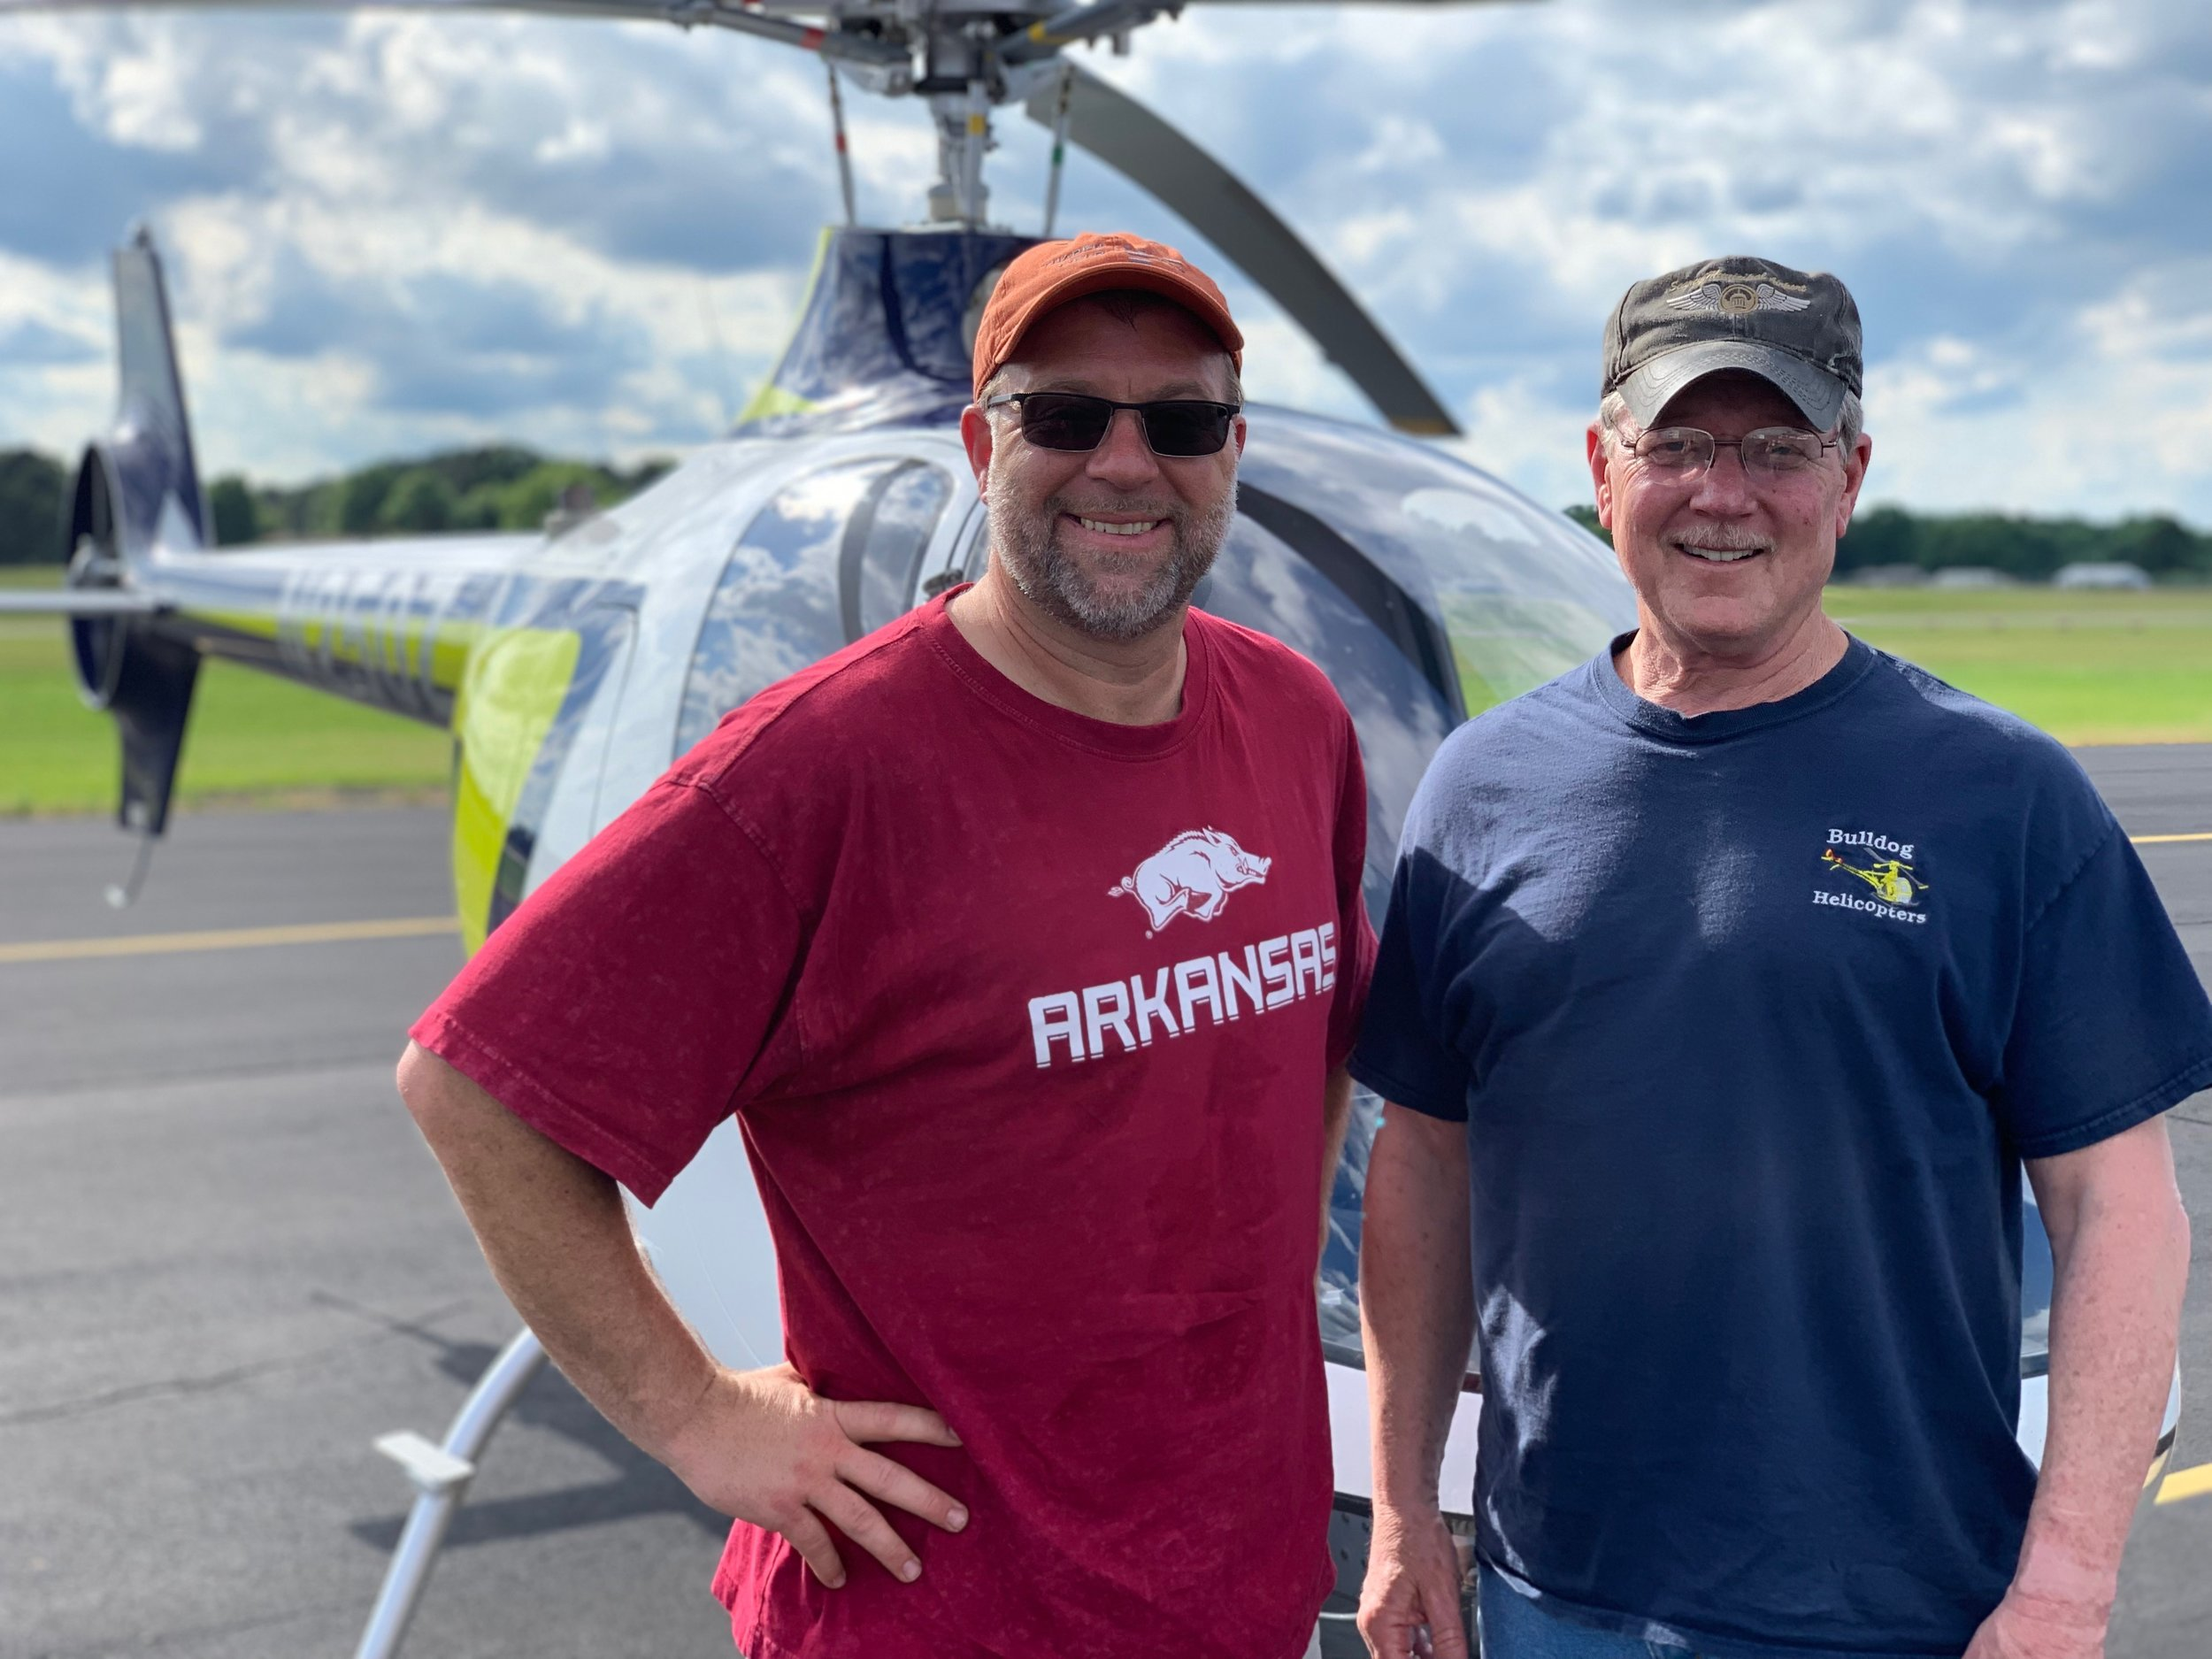 Congratulations to our first helicopter program graduate, Chris Landis! Also, congratulations to CFI Chad Cox on making another helicopter pilot!